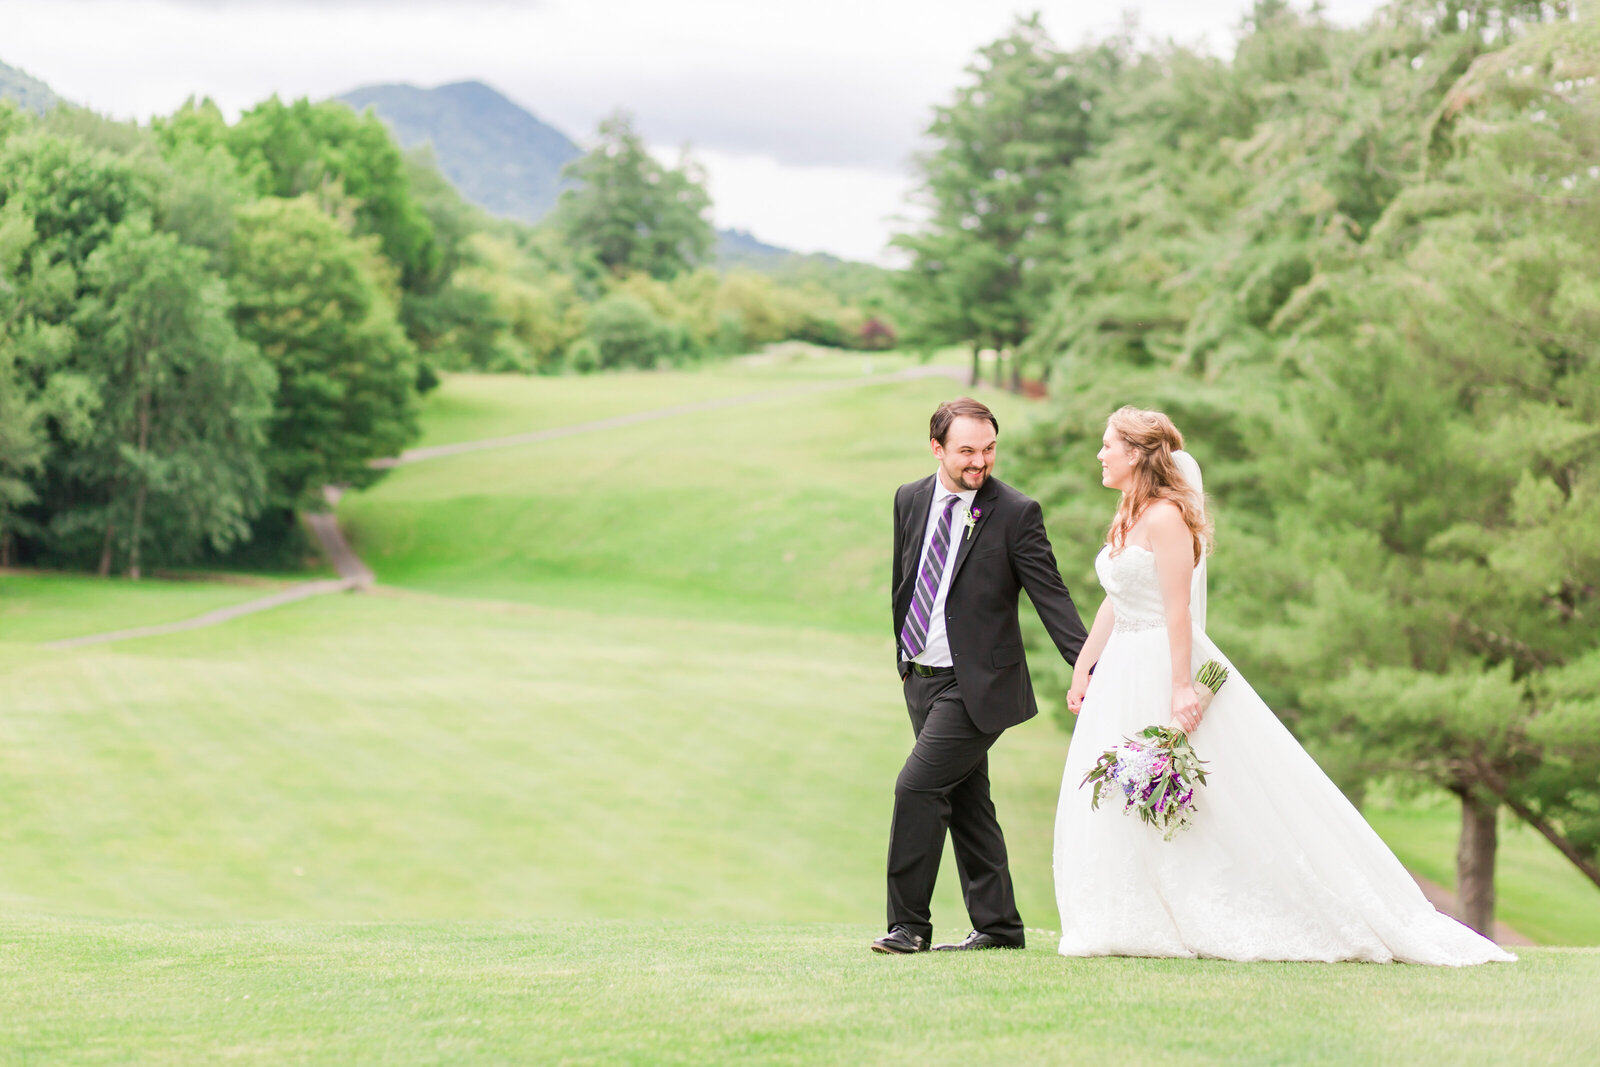 the-shore-loch-lomond-argll-wedding-scotland-venue72